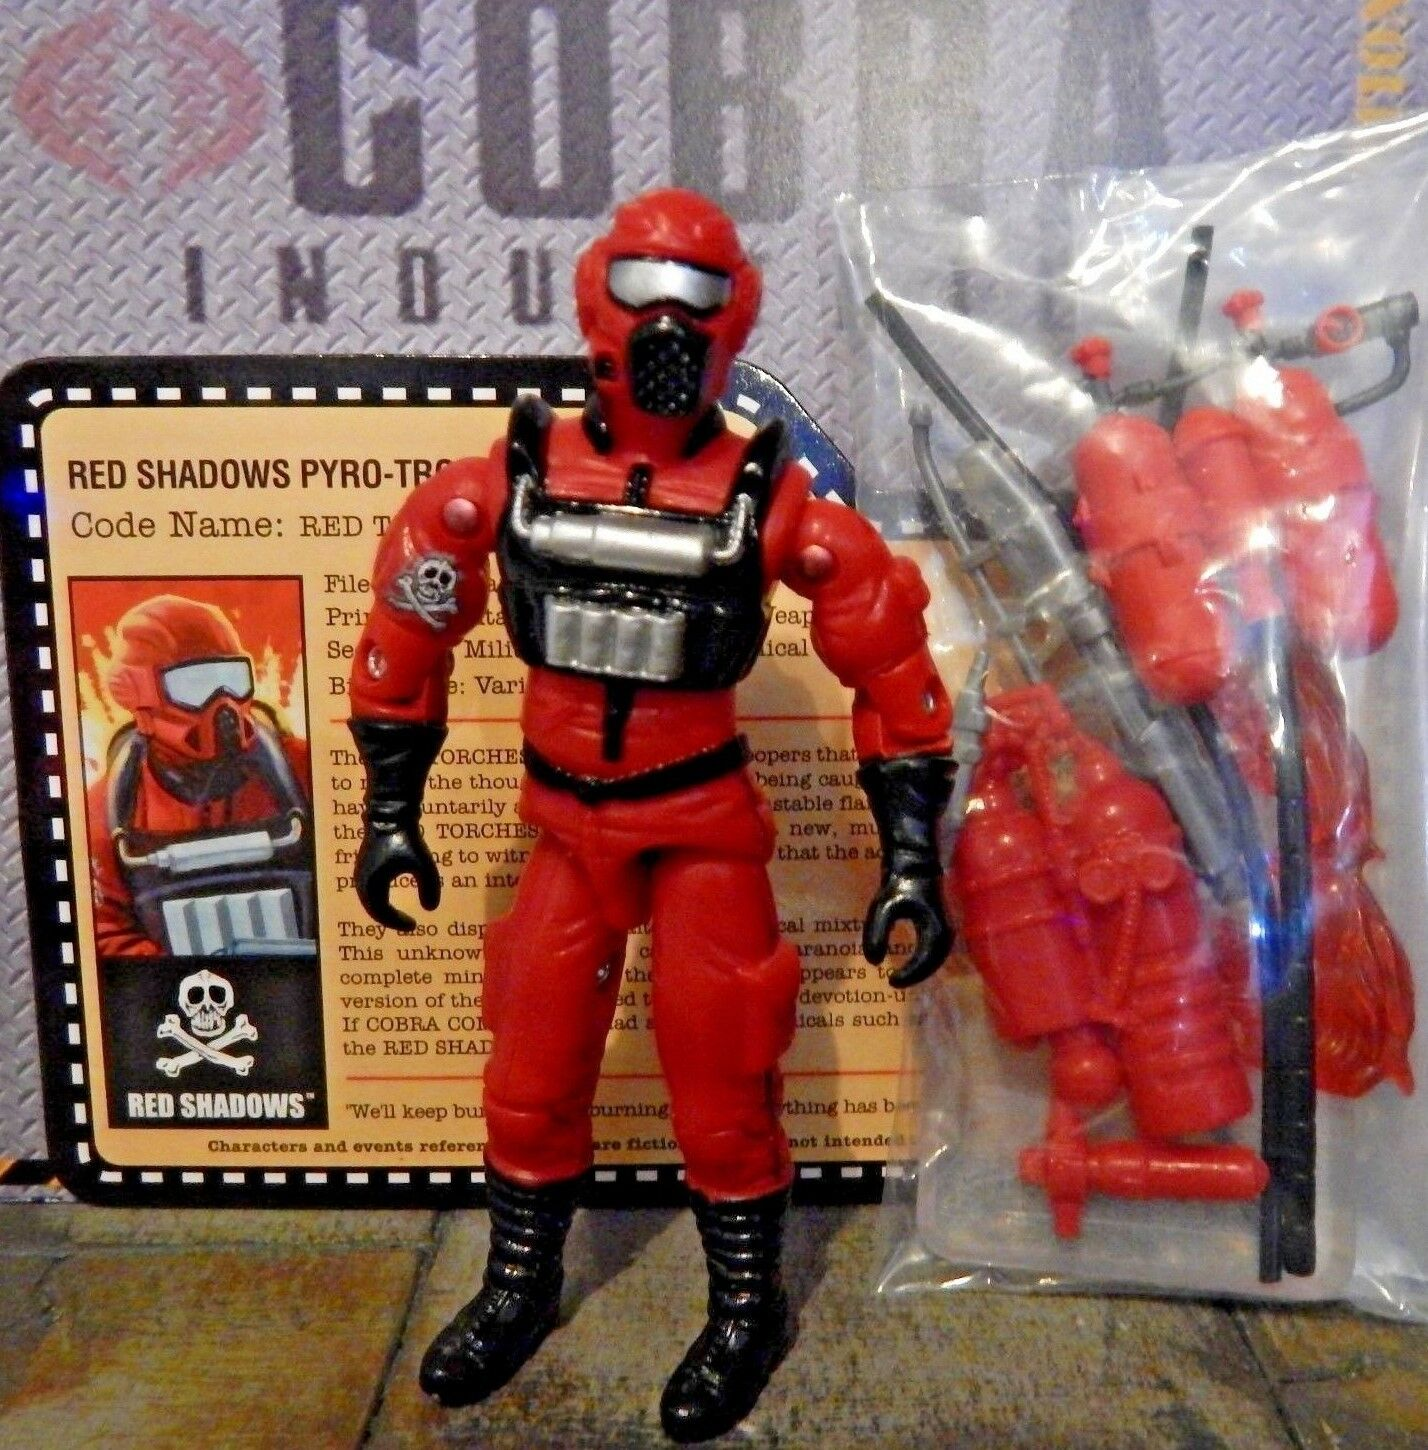 GI JOE  2010 RED TORCHES  RED SHADOWS PYRO-TROOPER  VACATION IN THE SHADOWS